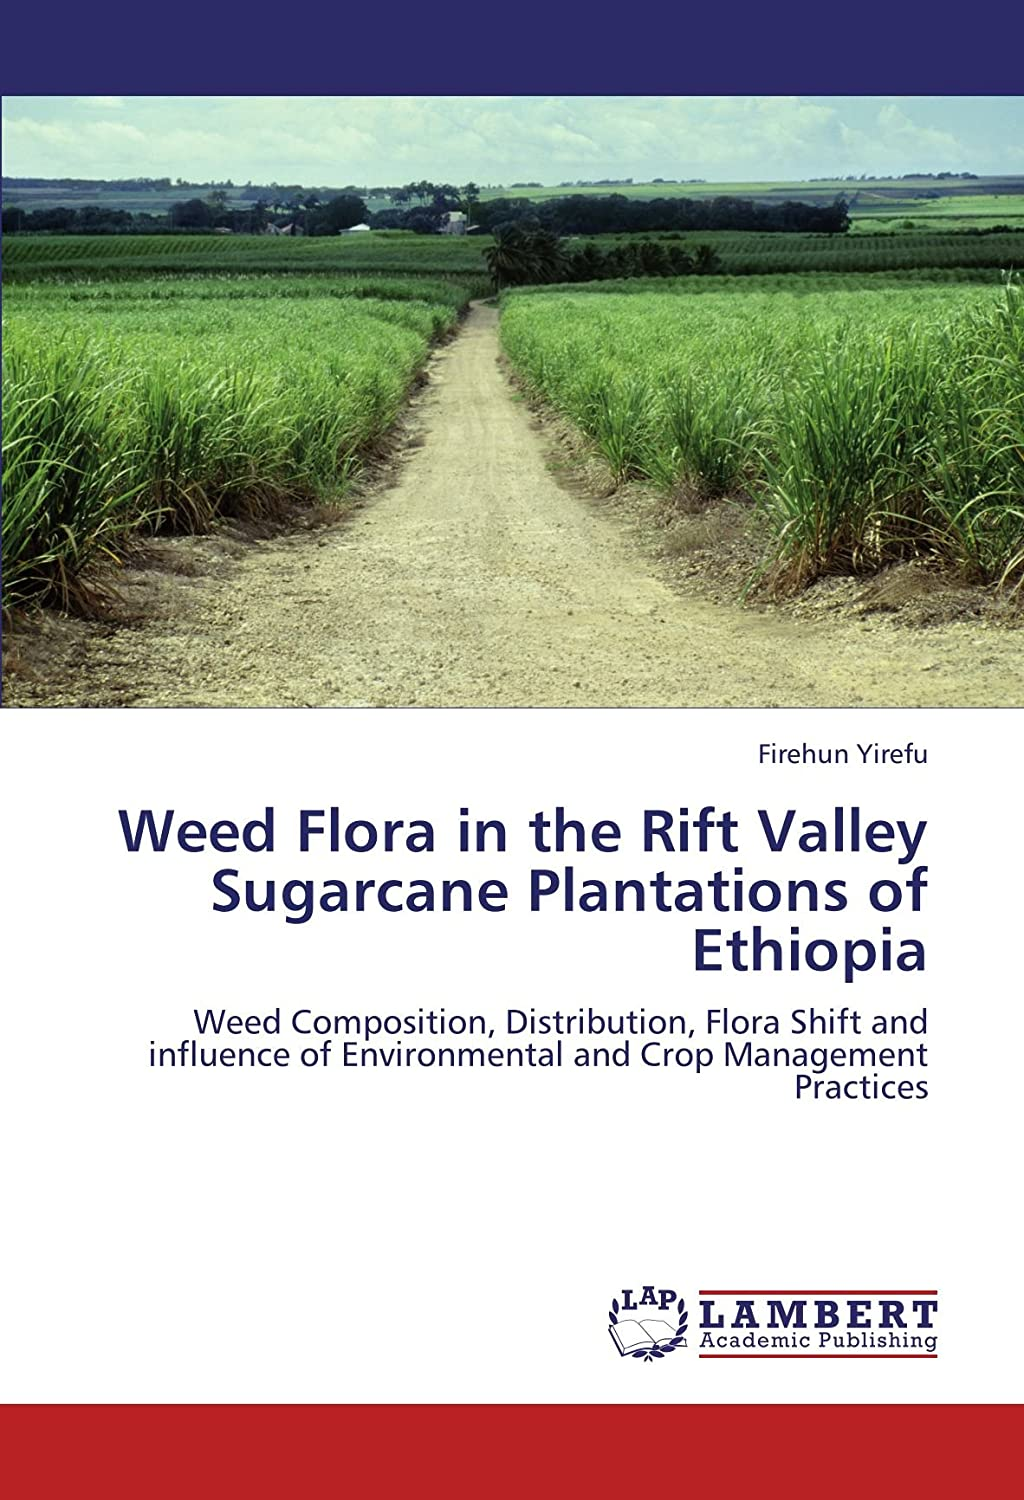 Weed Flora in the Rift Valley Sugarcane Plantations of Ethiopia